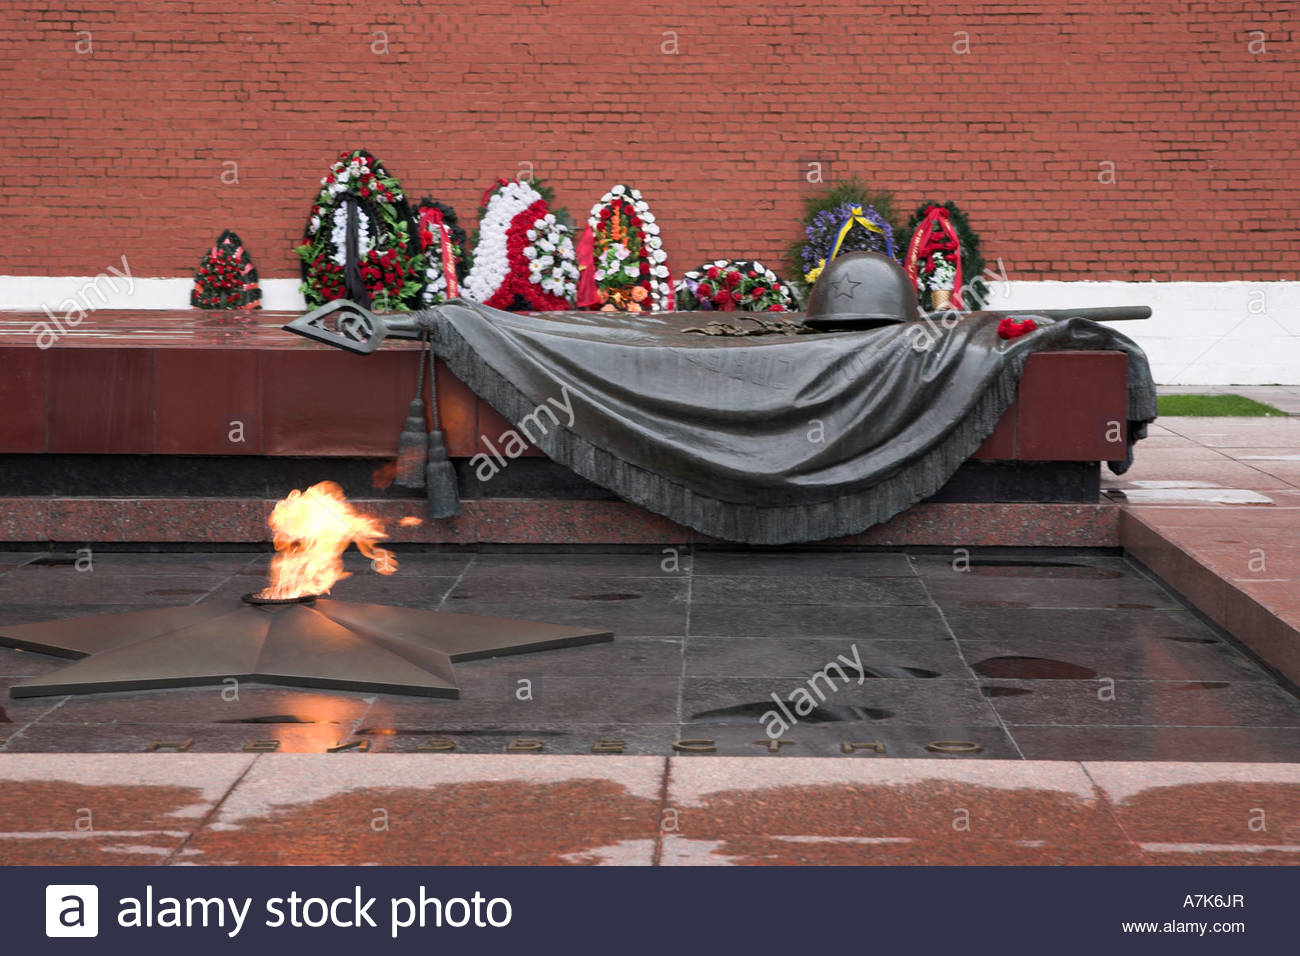 Tomb of the Unknown Soldier Moscow, Tomb of the Unknown Soldier, Moscow Stock Photo, Royalty Free ...